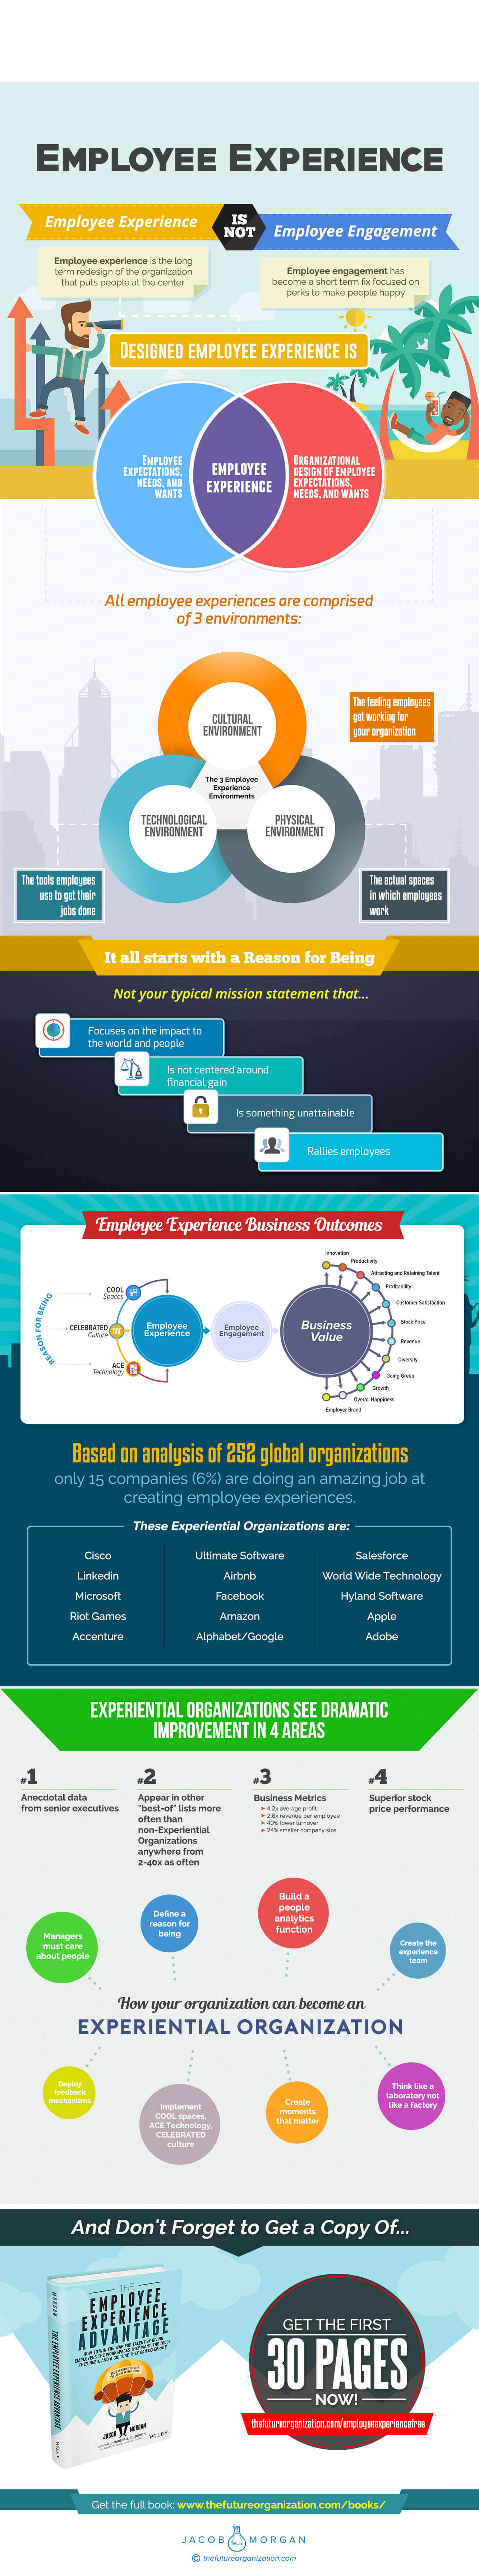 Employee experience infographic